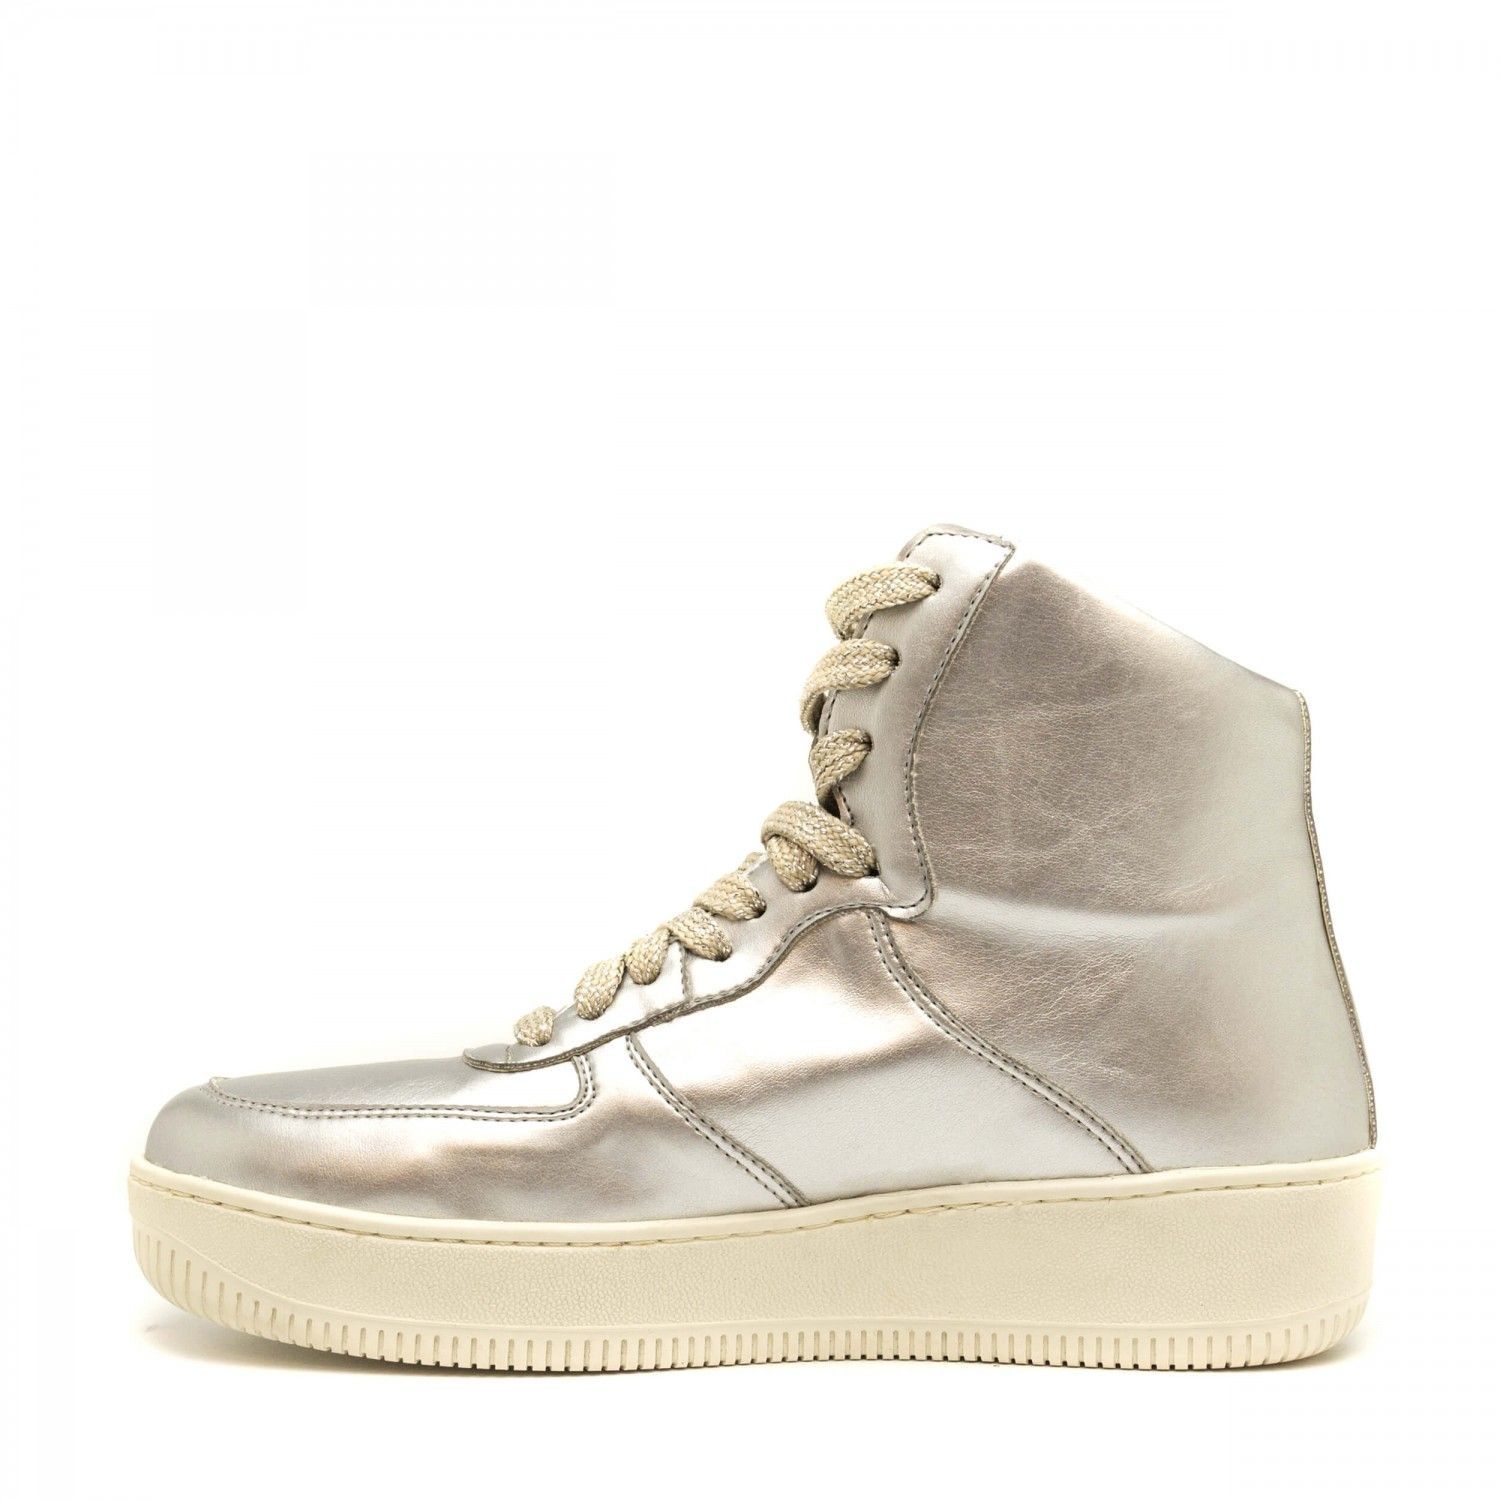 NAE vegan shoes Sneaker Zilver Okul Metal Vegan